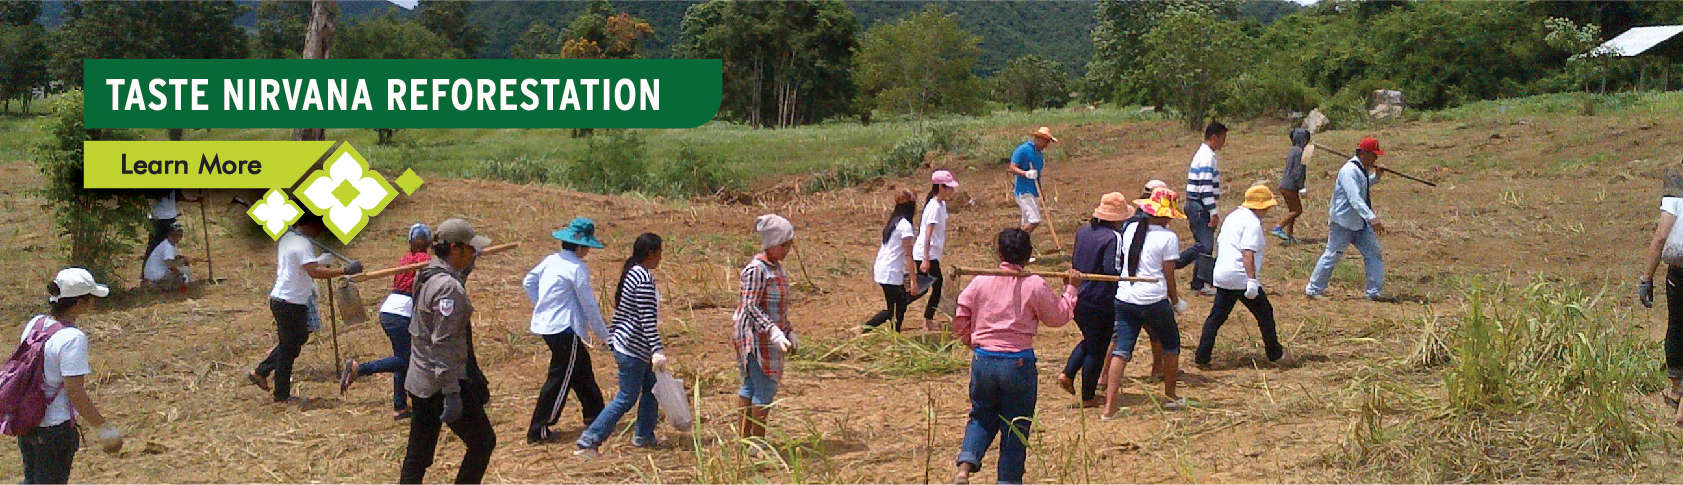 Taste Nirvana Reforestation - Learn More